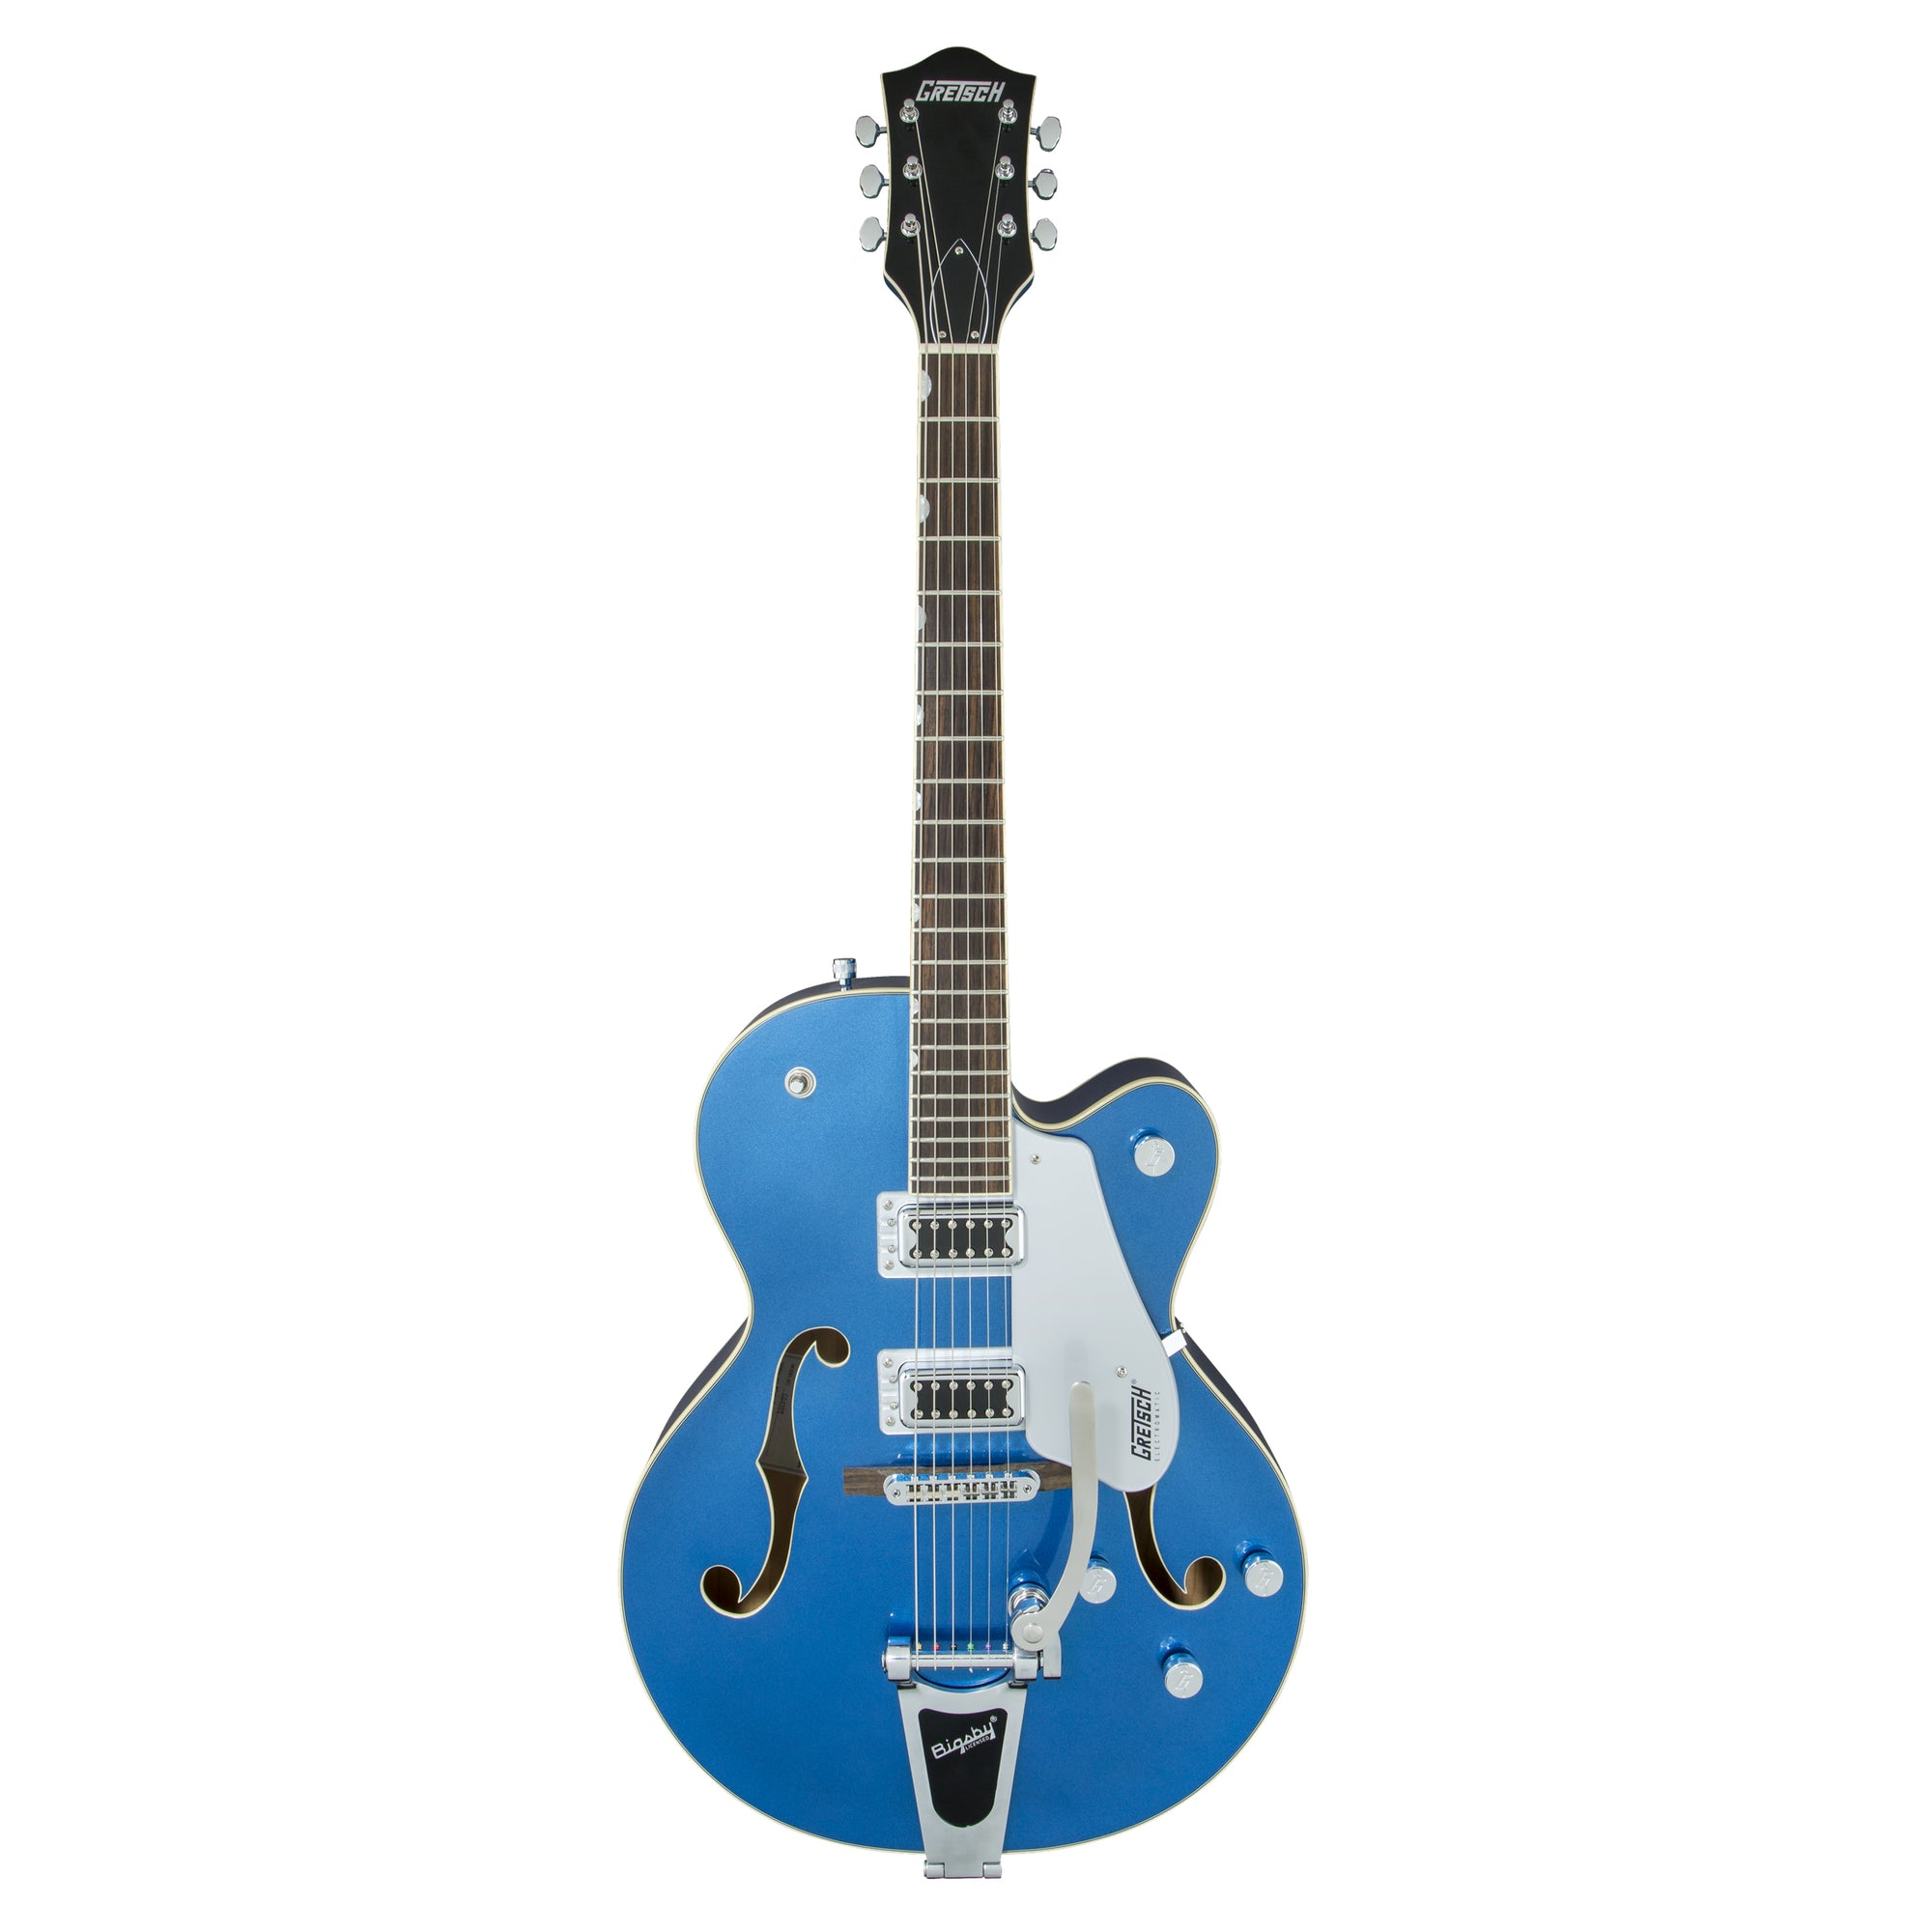 Gretsch G5420T Electromatic Single Cut Bigsby Fairlane Blue